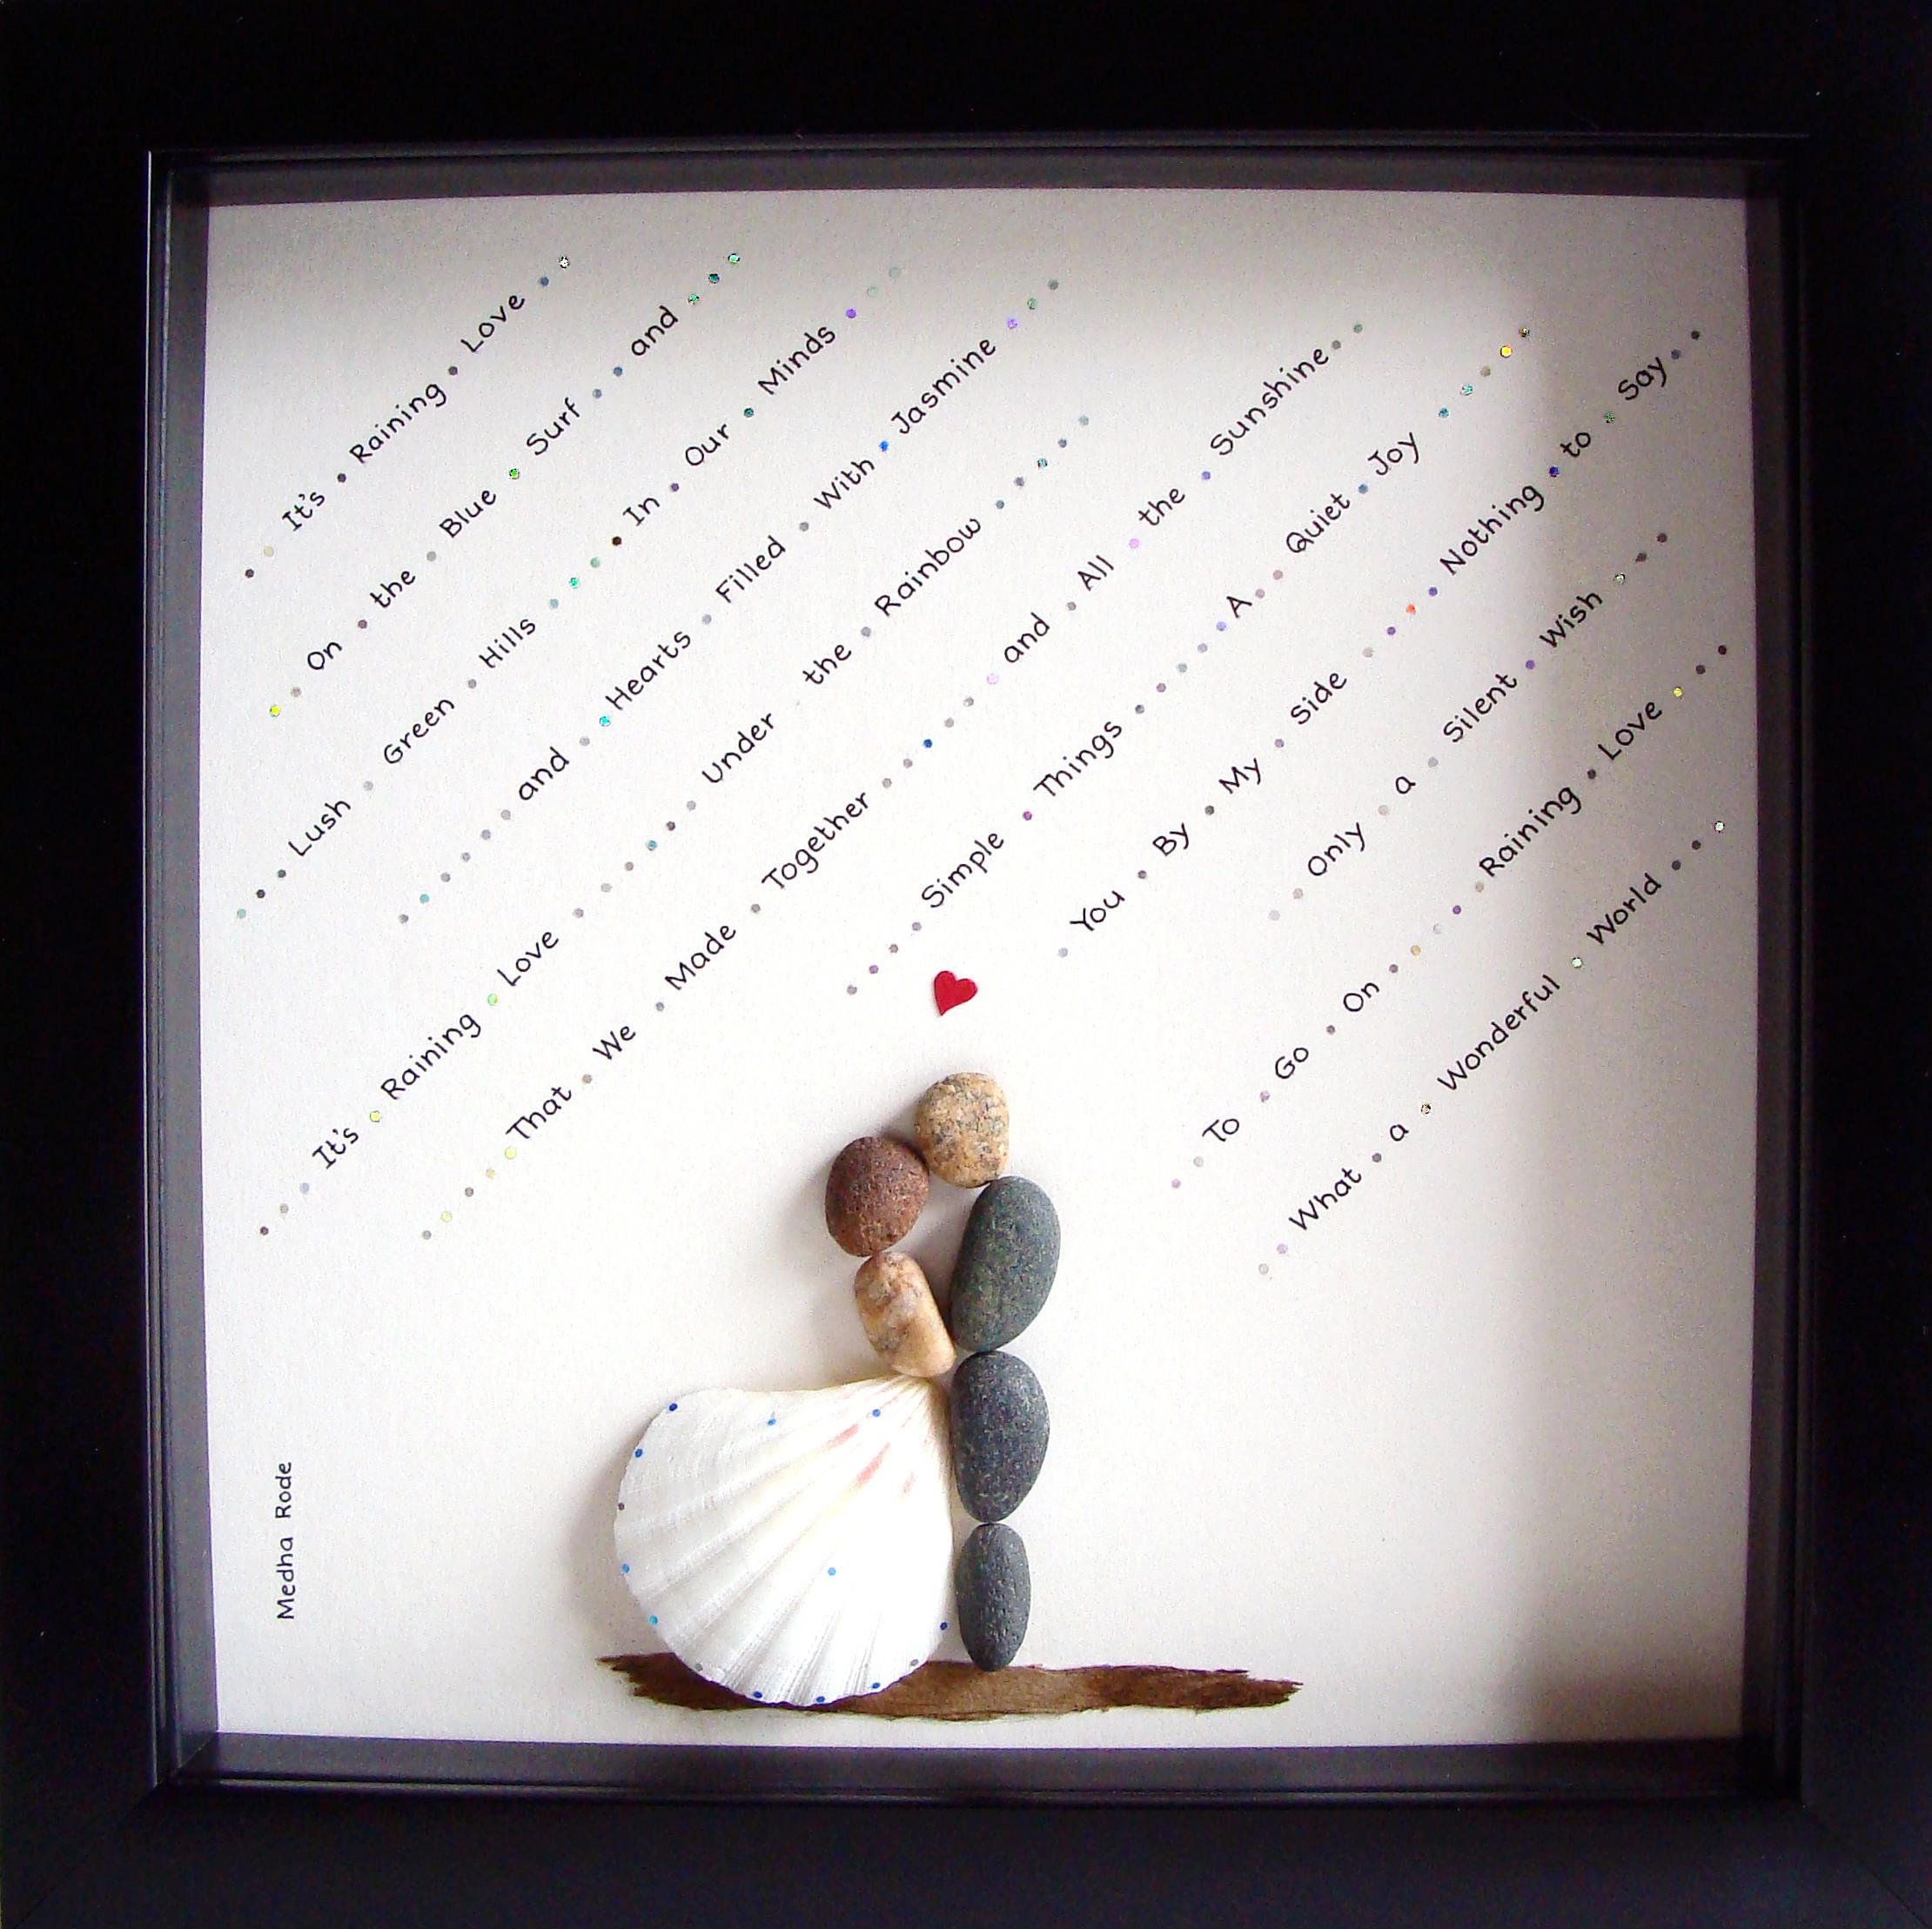 unique wedding gift customized wedding gift pebble art. Black Bedroom Furniture Sets. Home Design Ideas